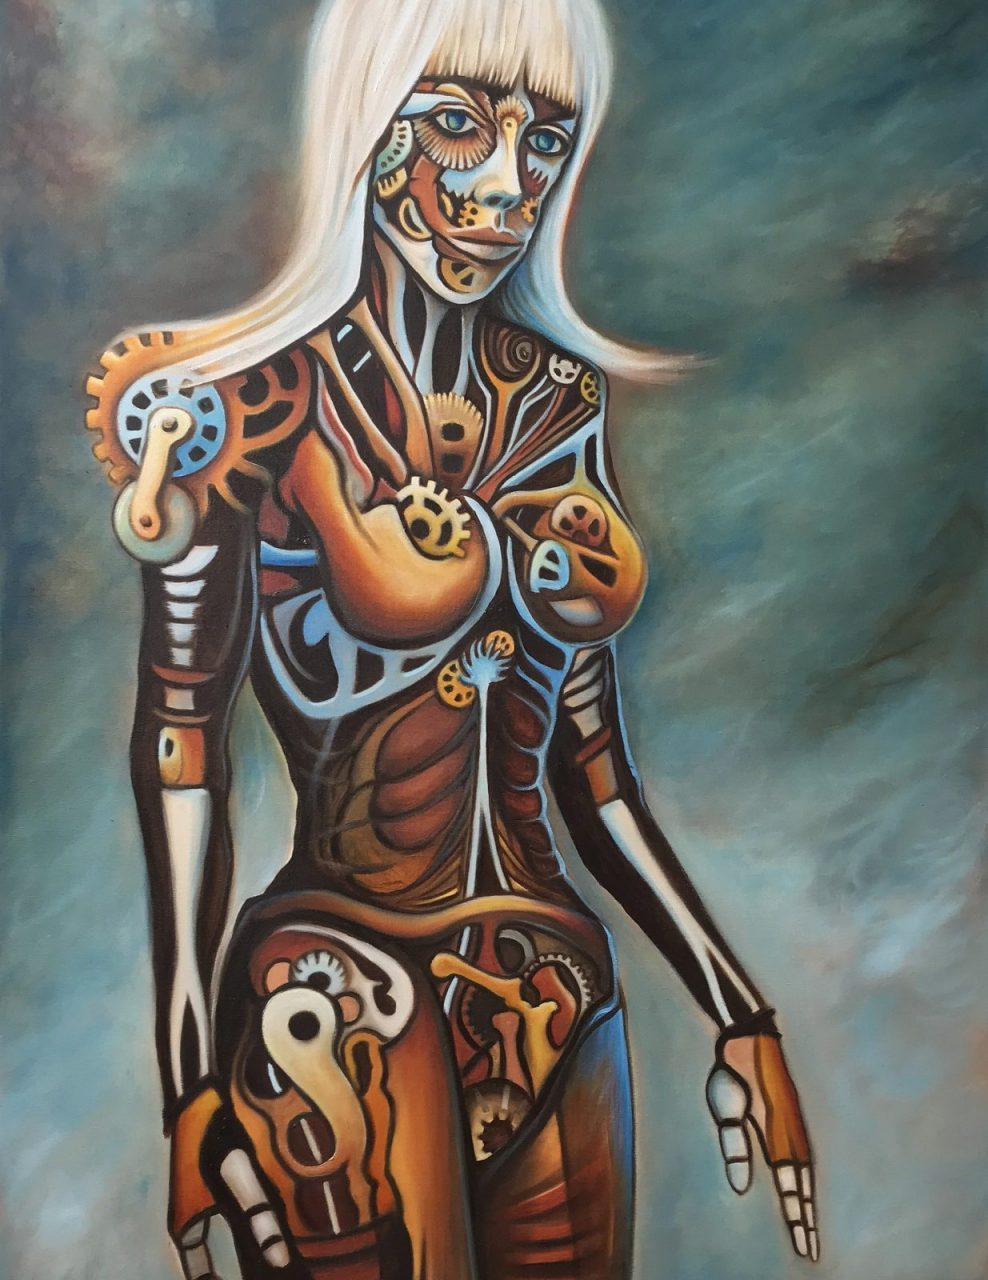 Kourai Khryseai One - surreal, figurative, oil painting by Paul Kingsley Squire